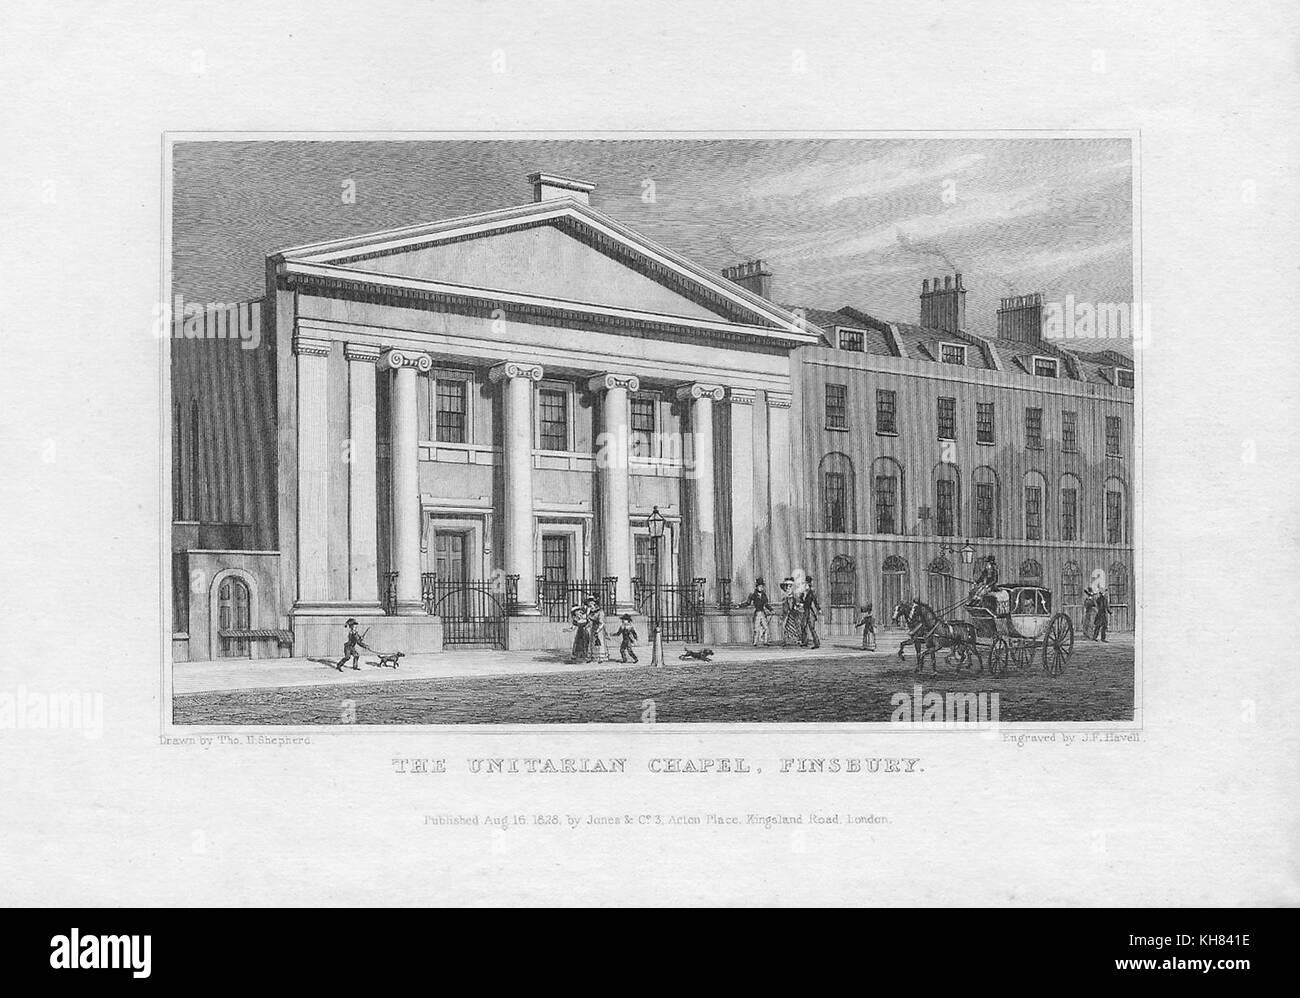 The Unitarian Chapel, Finsbury, engraving from 'Metropolitan Improvements, or London in the Nineteenth Century' - Stock Image